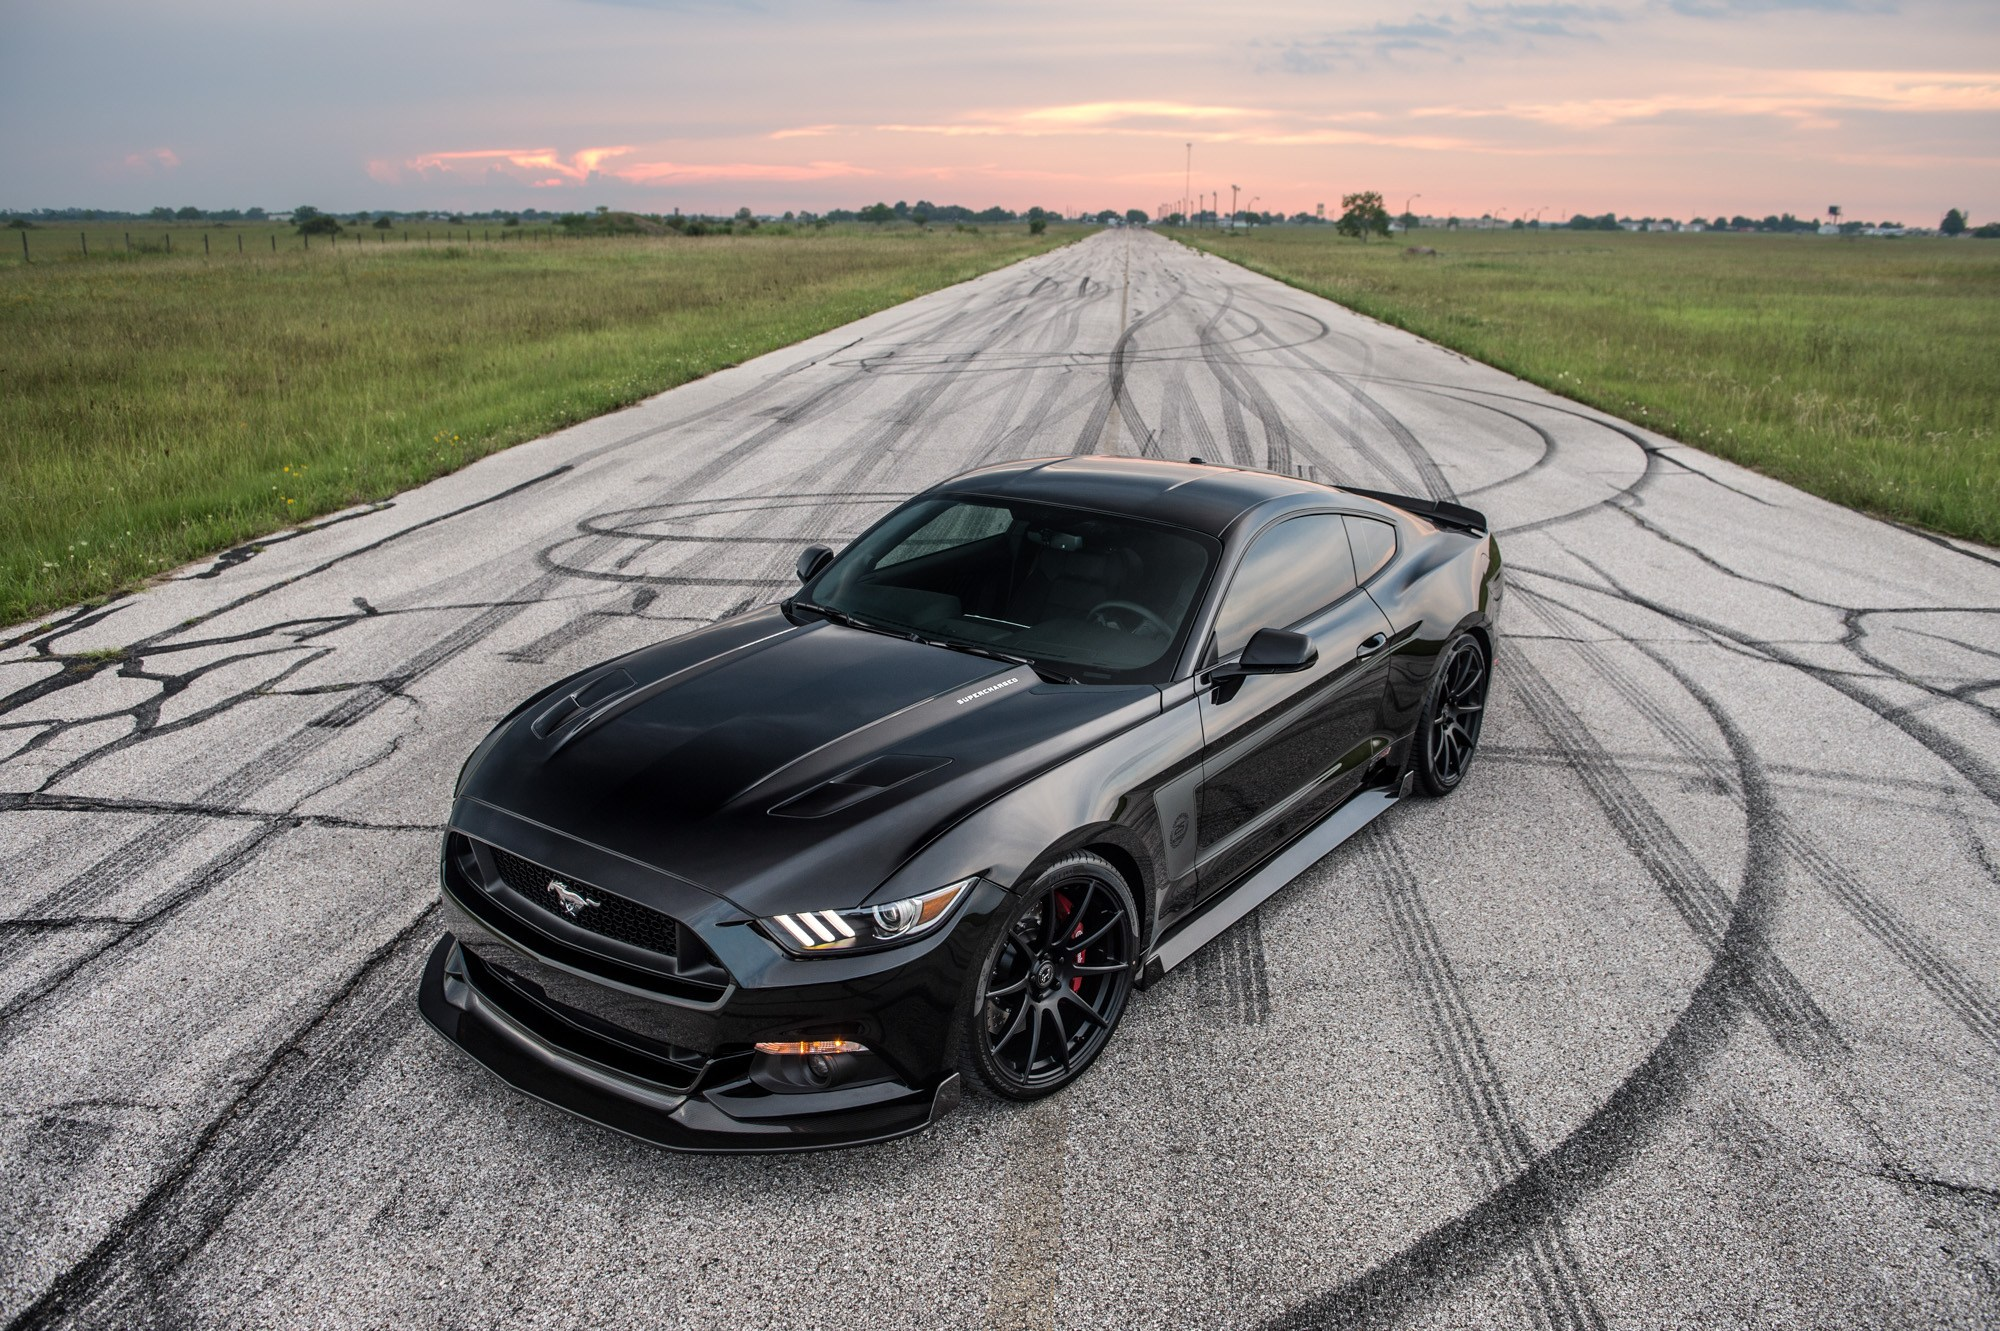 Hennessey hpe500 ford mustang 01